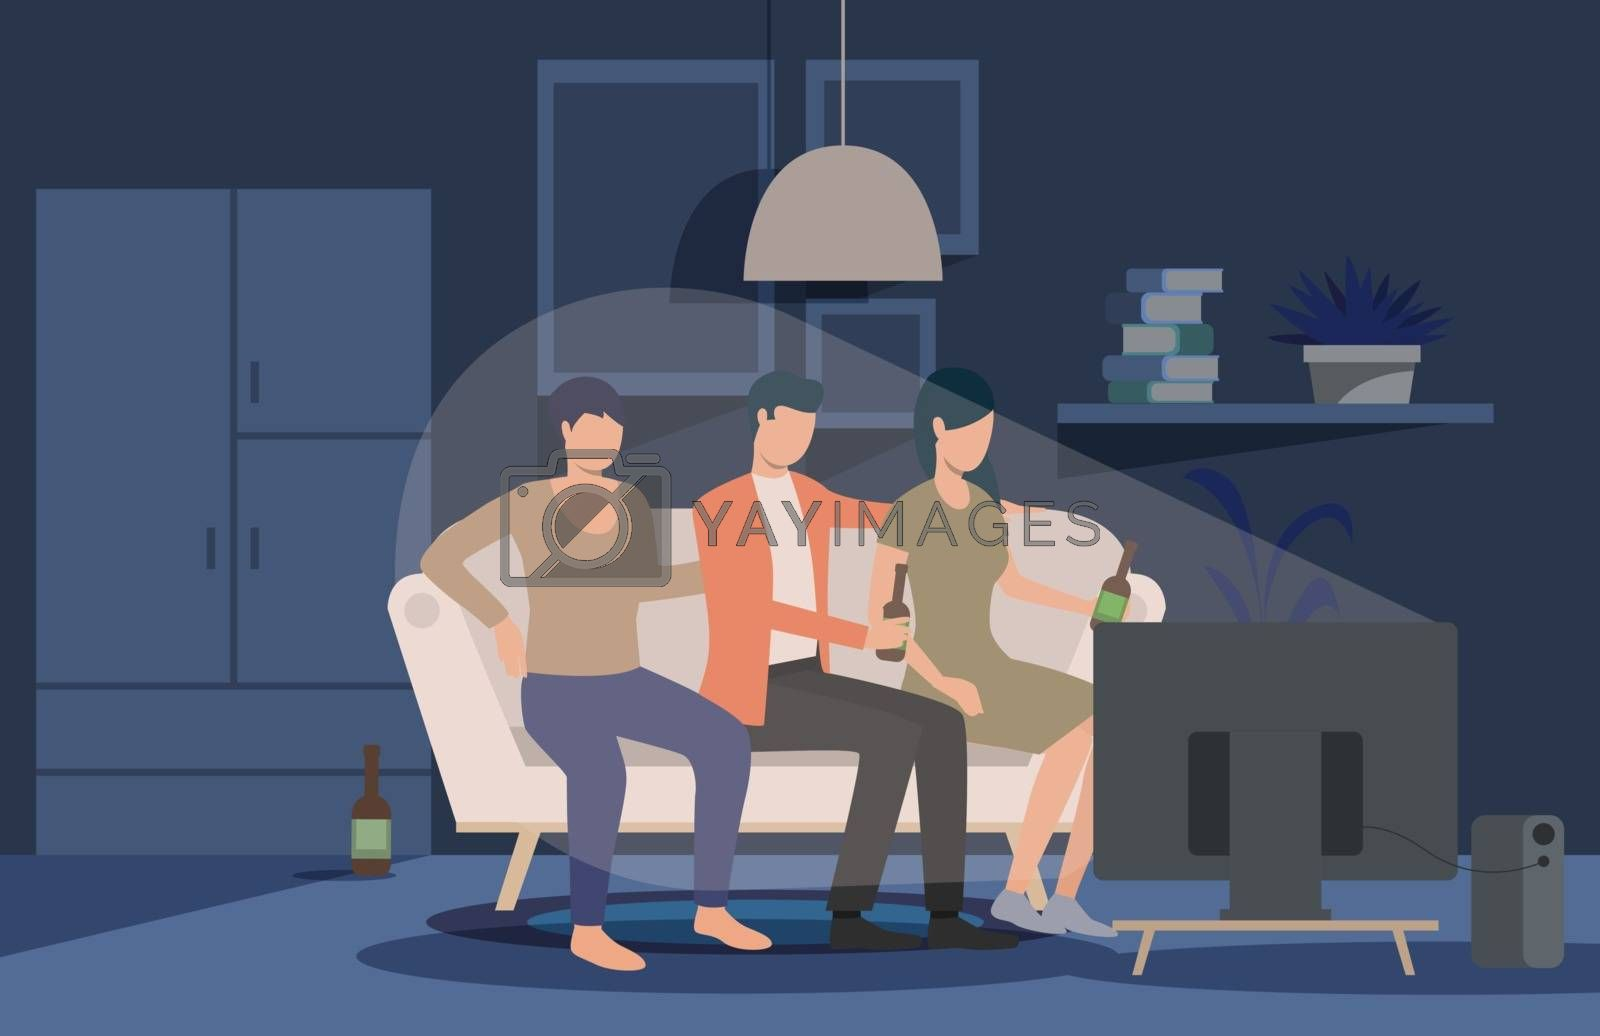 Friends watching movie at home landing page. People sitting on couch at TV, eating pop corn, drinking beer. Leisure concept. Vector illustration for topics like meeting, friendship, party